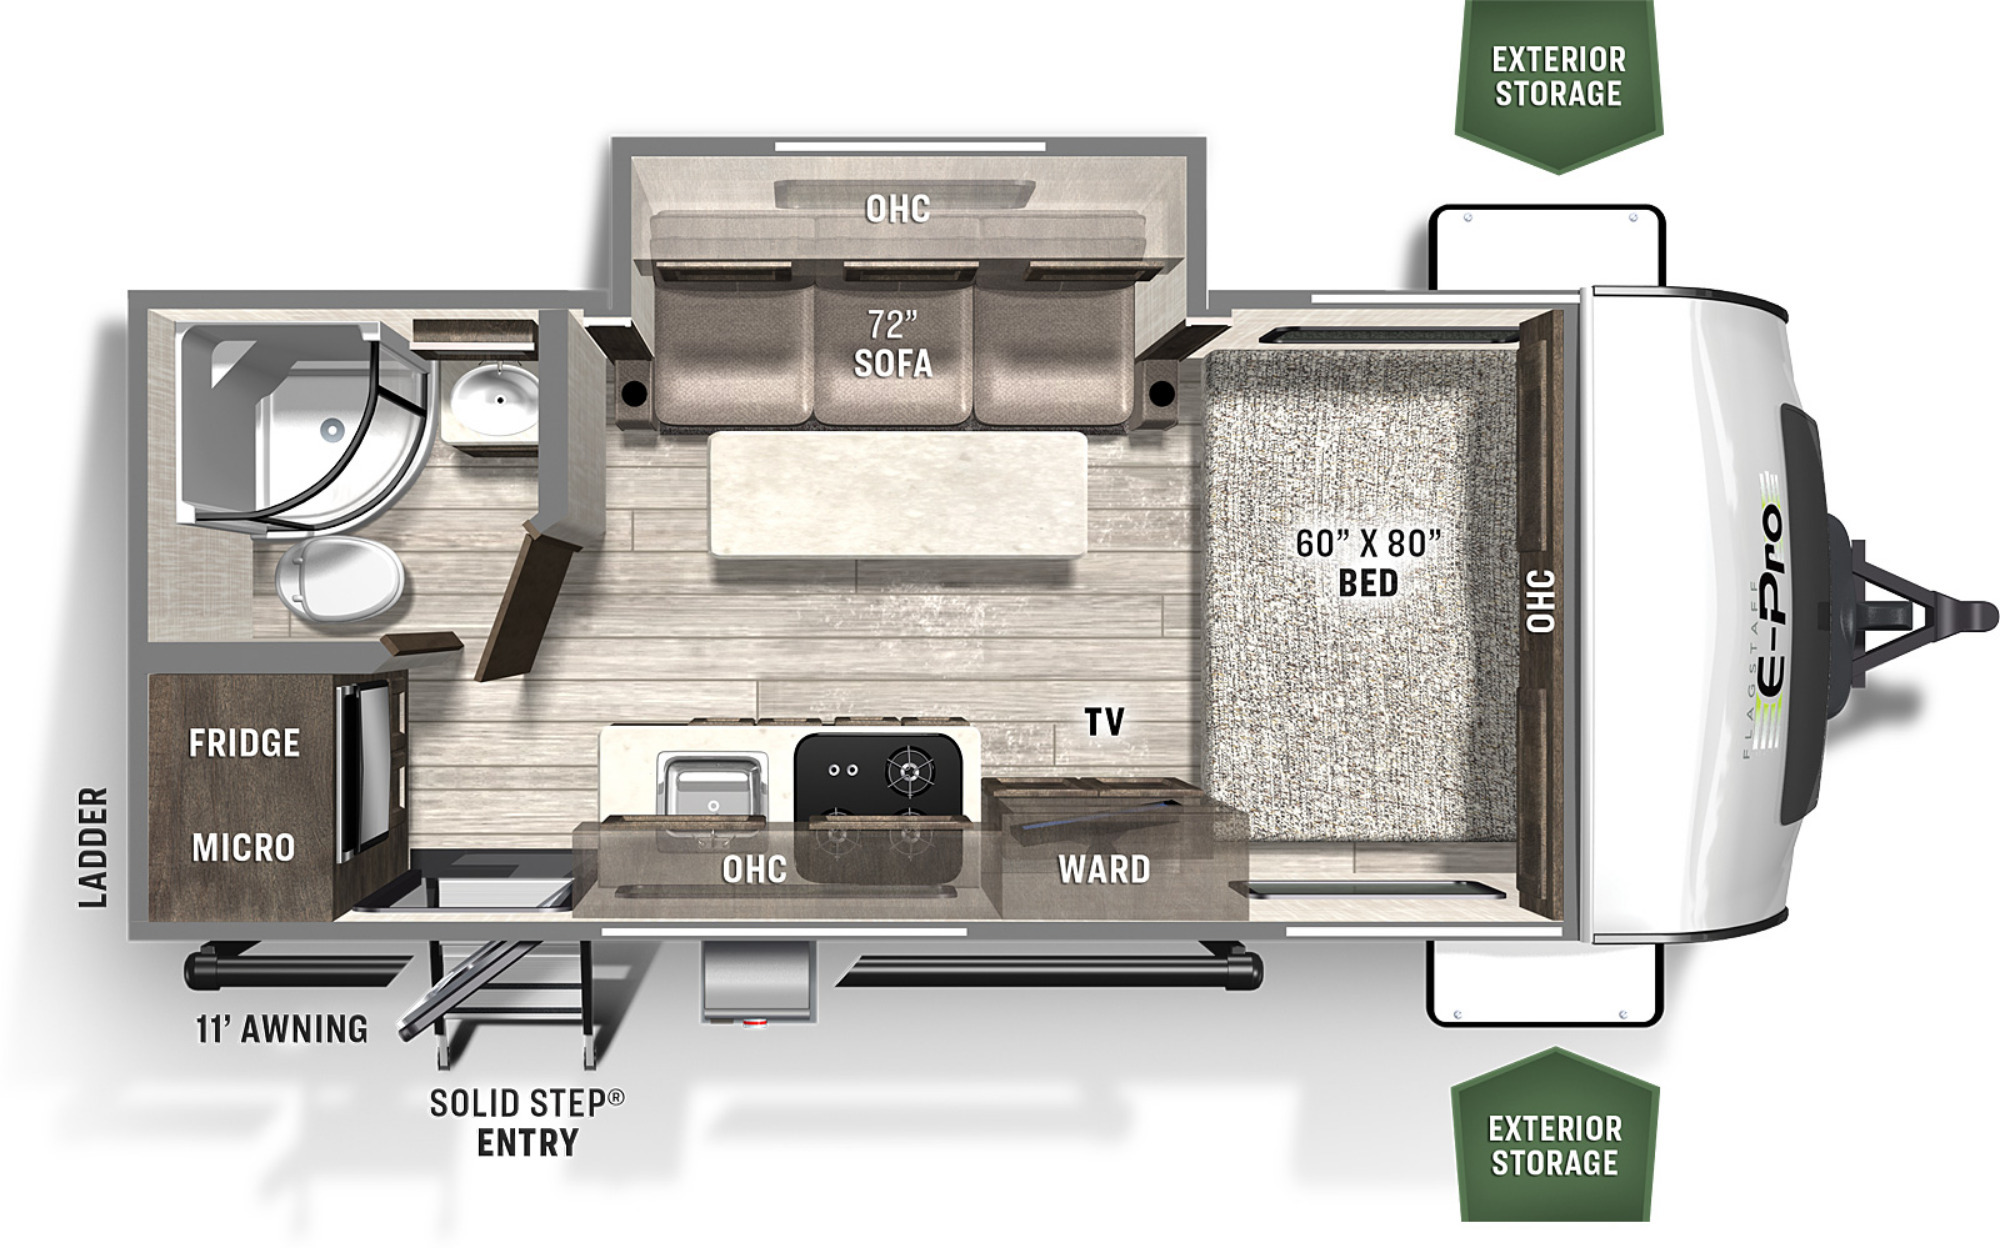 View Floor Plan for 2022 FOREST RIVER FLAGSTAFF E-PRO 19FBS